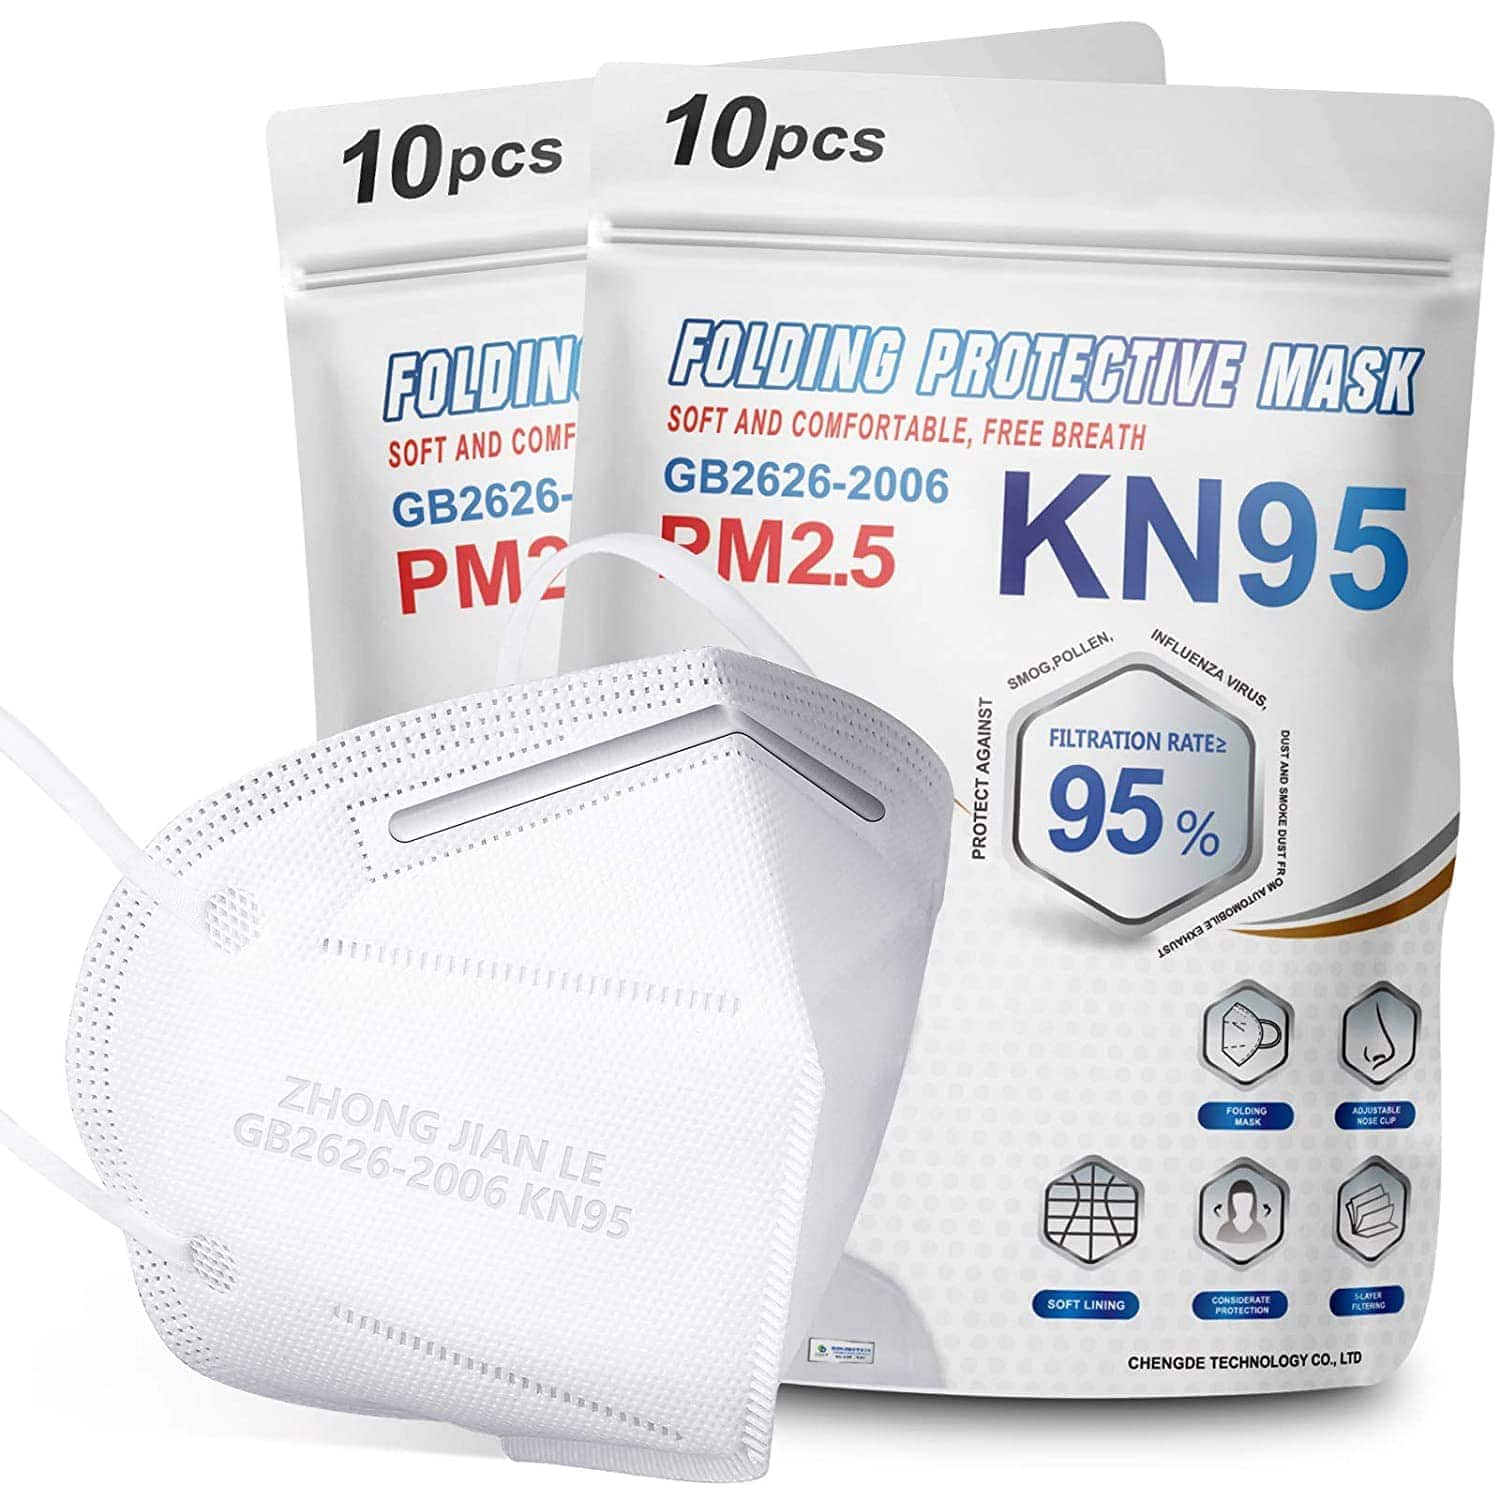 20-Pack KN95 Masks FDA Authorized Respirator Ear Loop KN95 Masks $12.89 & Free Shipping